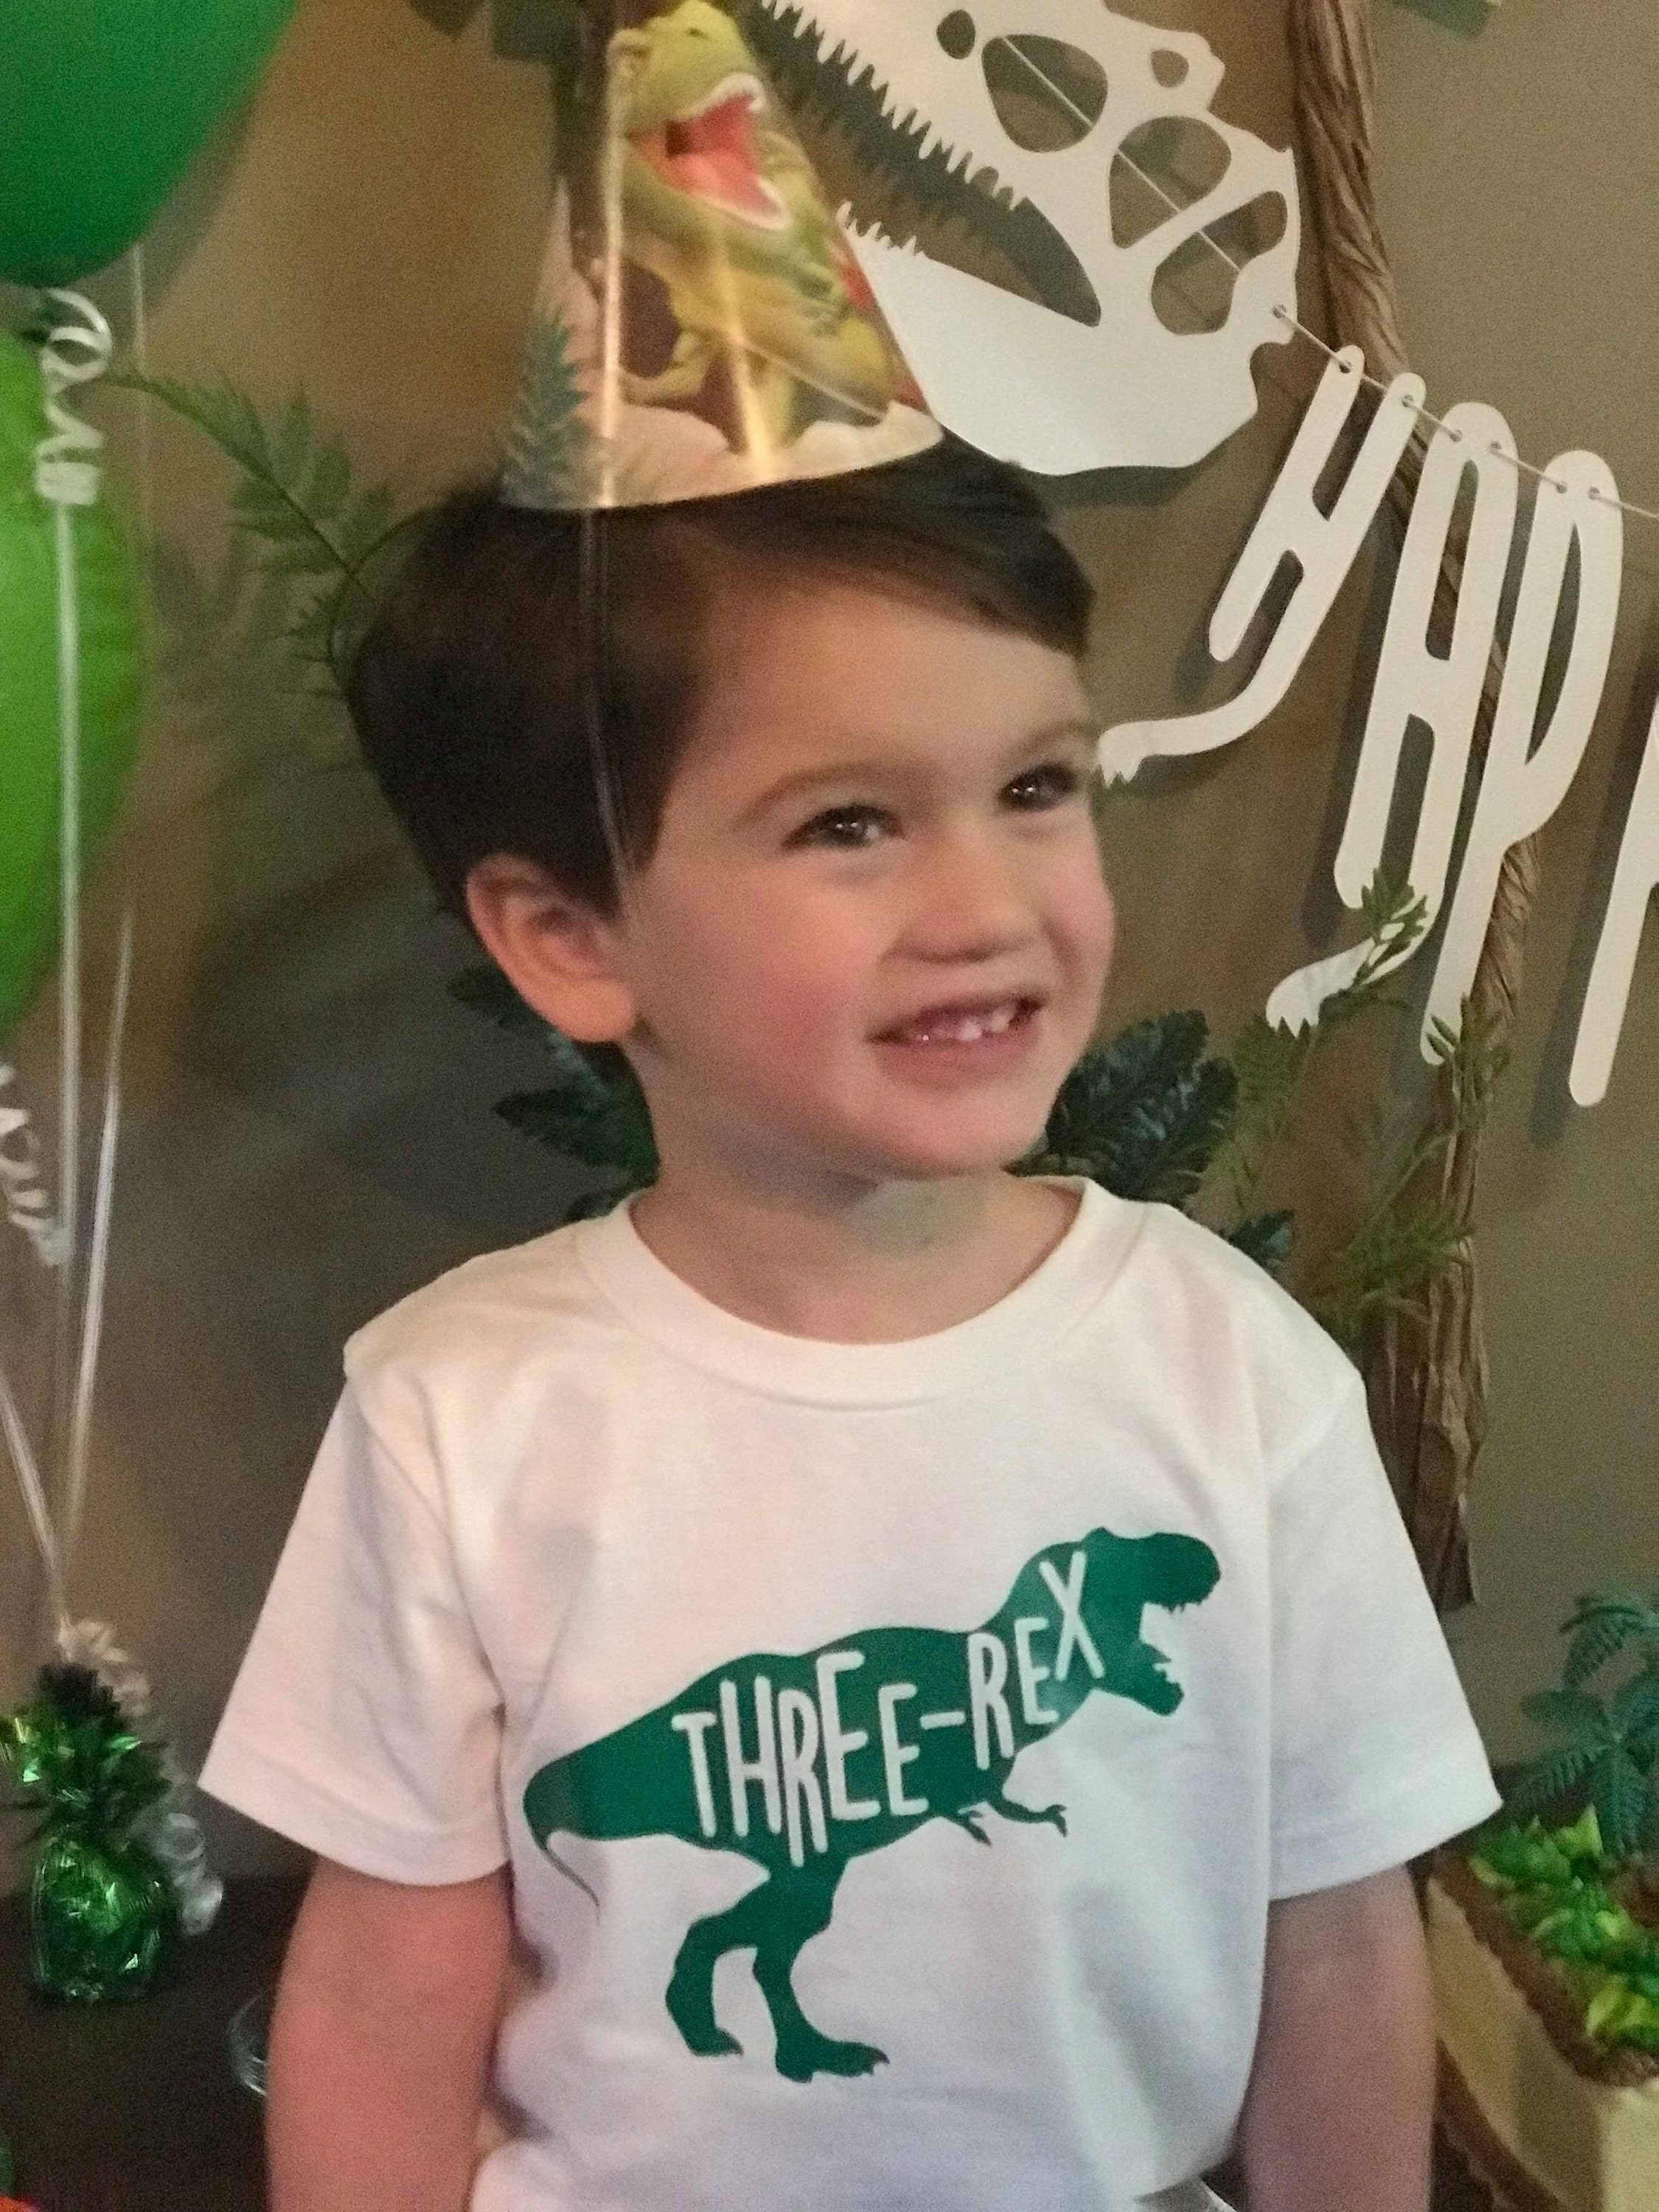 Three Rex Shirt Birthday Dinosaur Toddler Two Party Little Boy